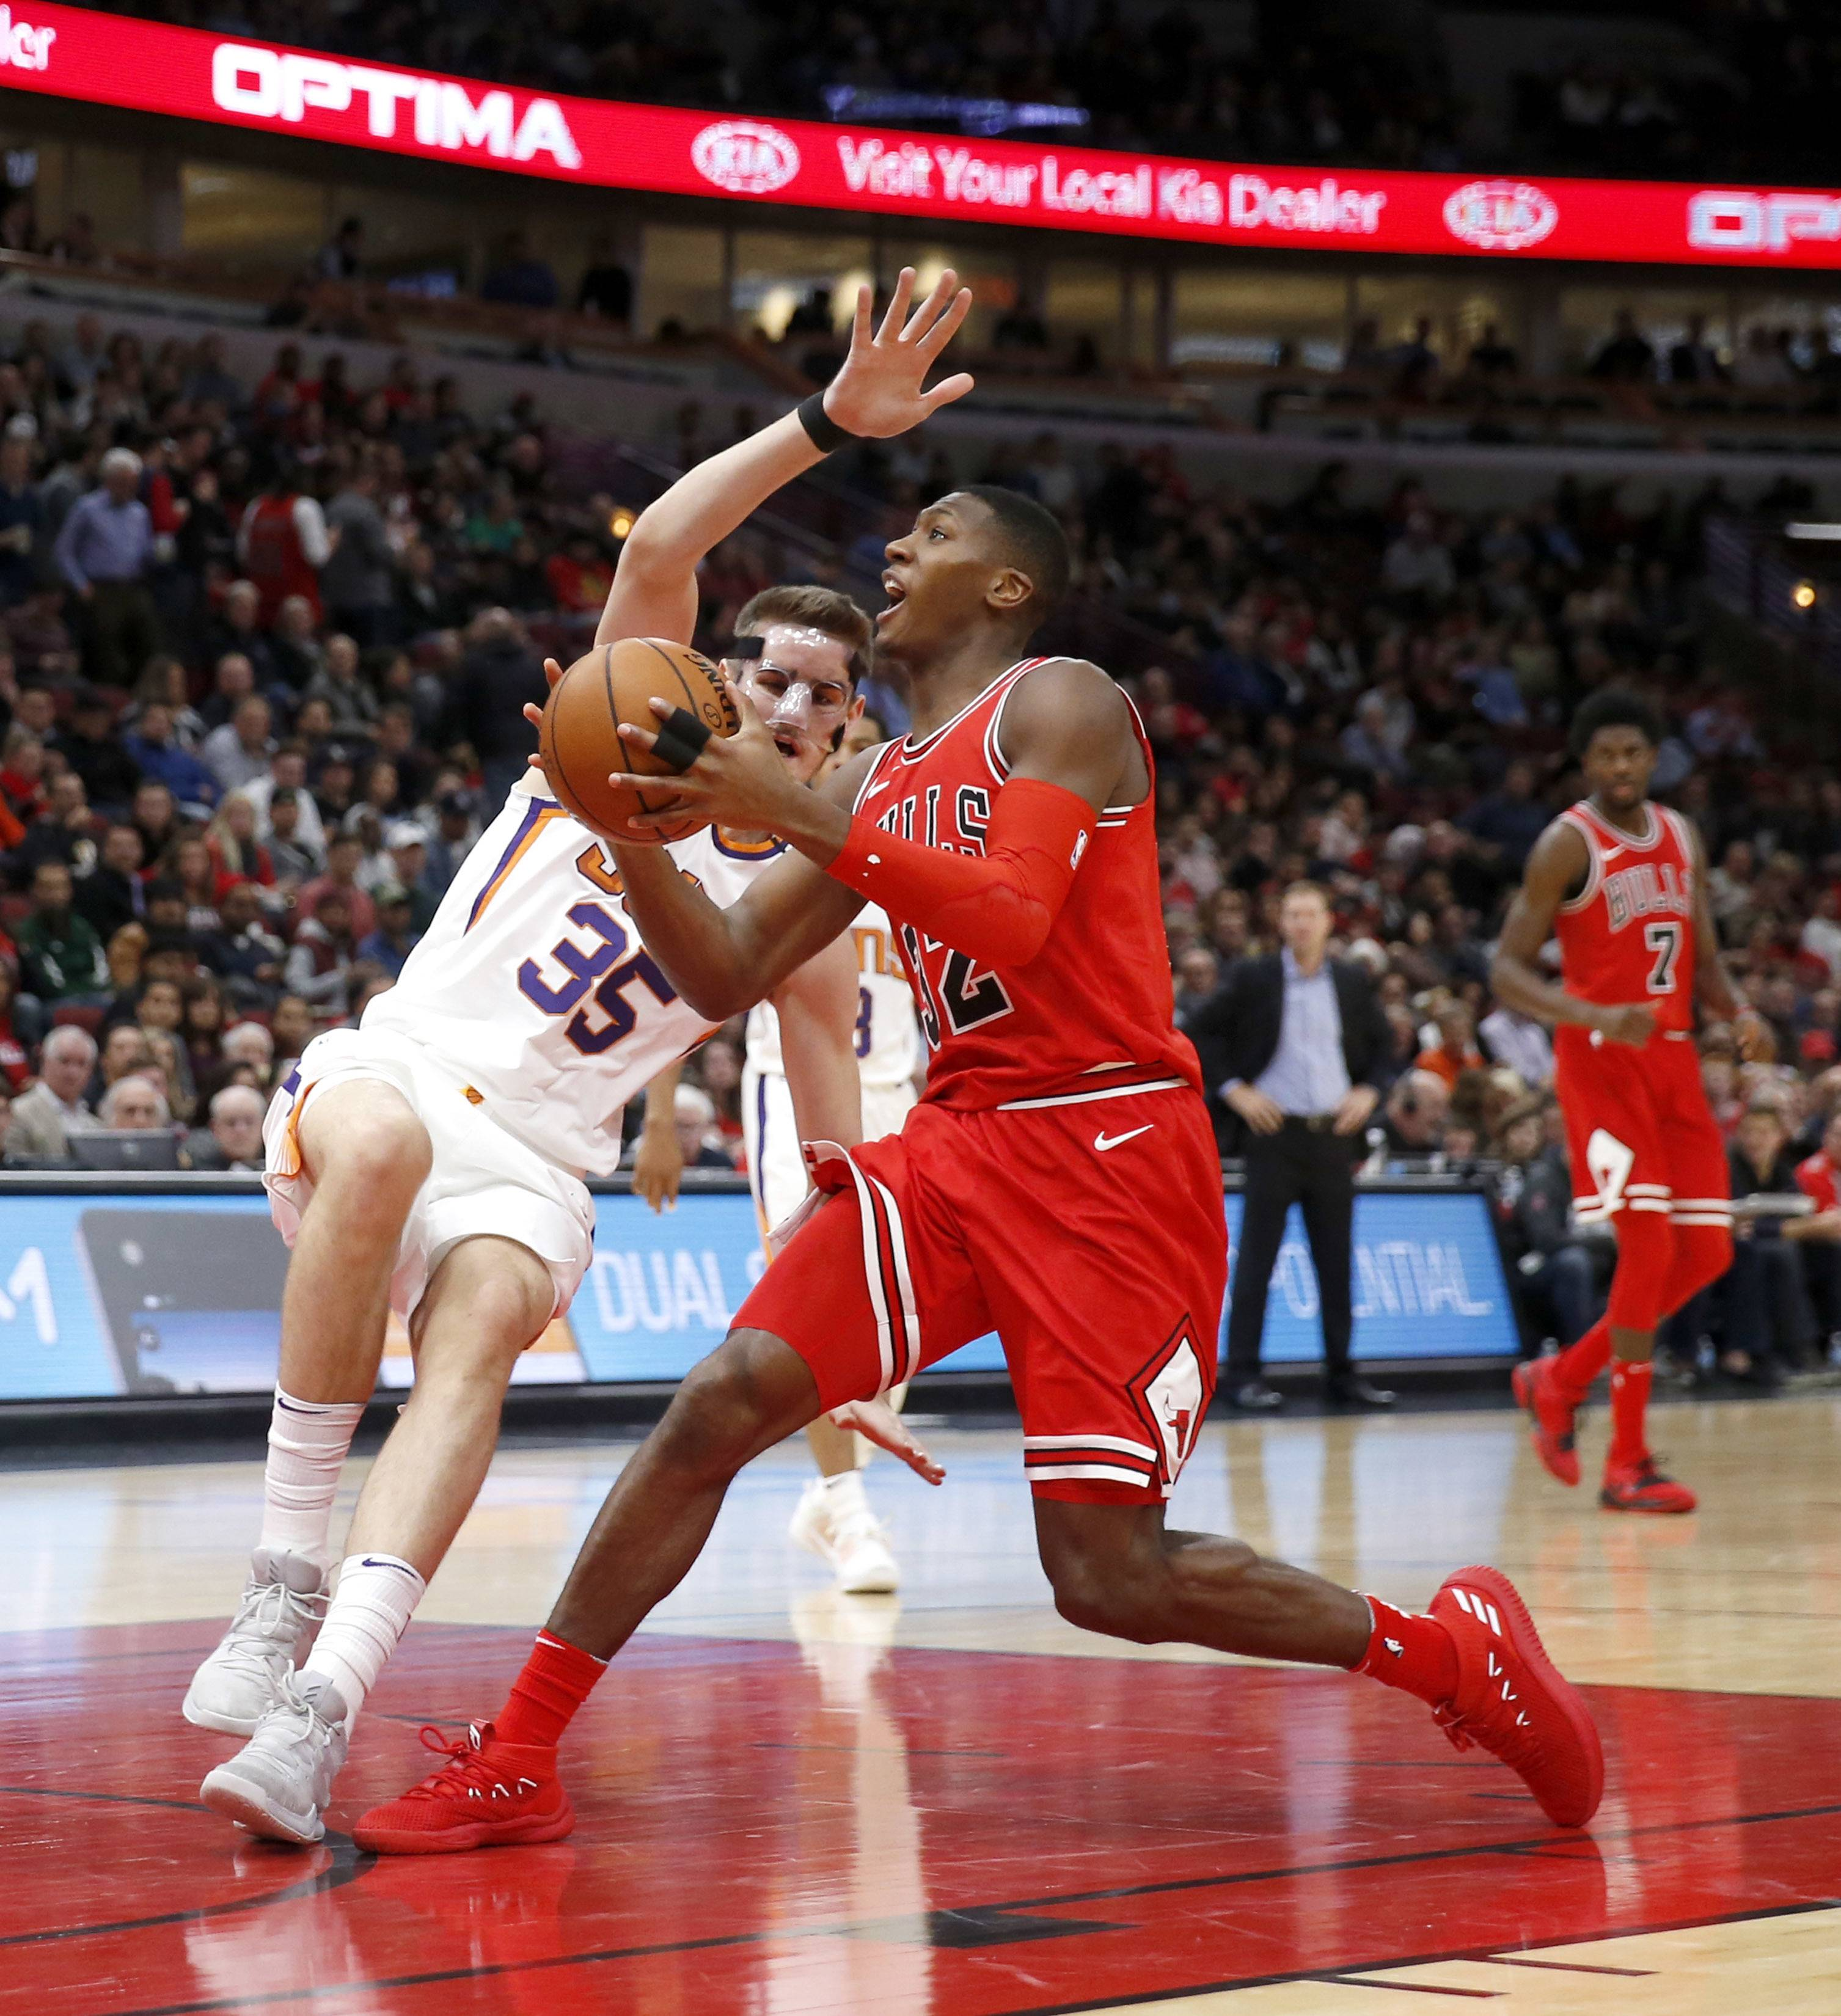 Bulls point guard Kris Dunn skipped Saturday's practice after missing Friday's win over Indiana with patellar tendinitis in his left knee. Coach Fred Hoiberg thinks there's a chance Dunn could play Sunday at Washington.